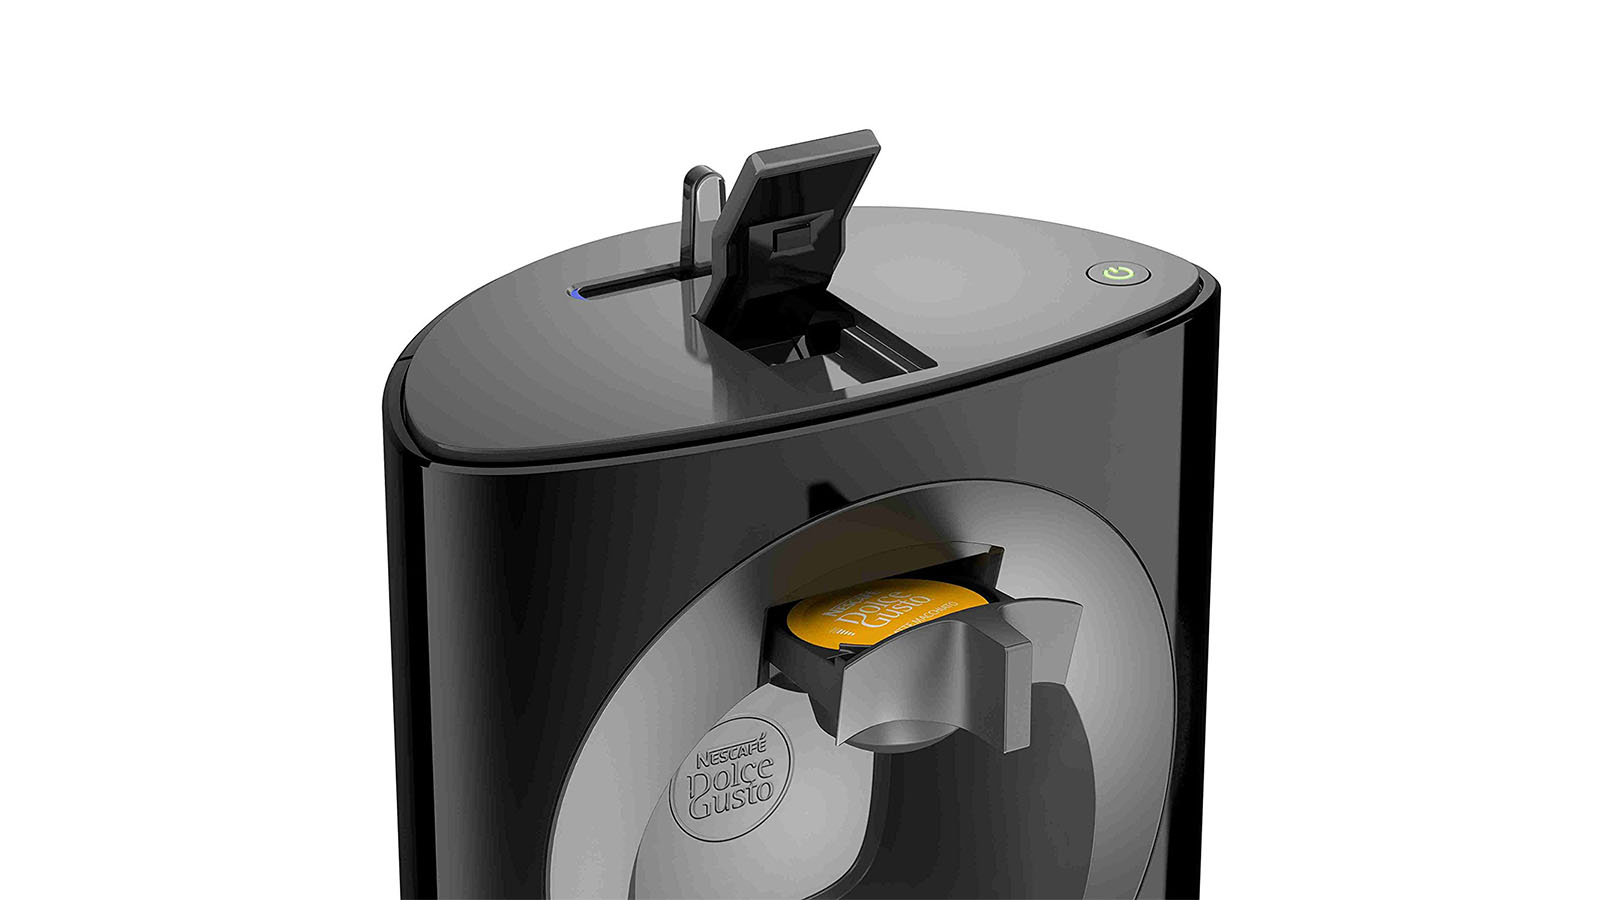 nescafe dolce gusto oblo coffee machine by krups review best coffee machines. Black Bedroom Furniture Sets. Home Design Ideas